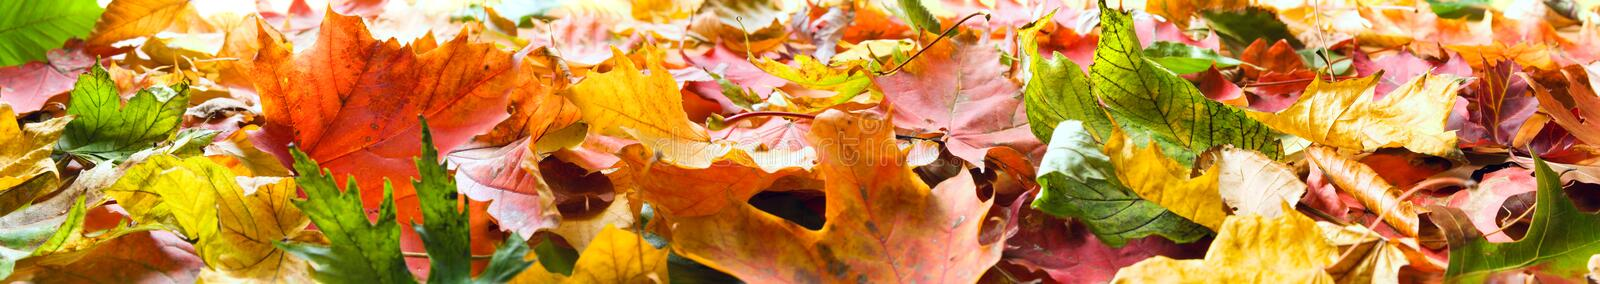 Download Autumn leaves panorama stock photo. Image of closeup - 16526898